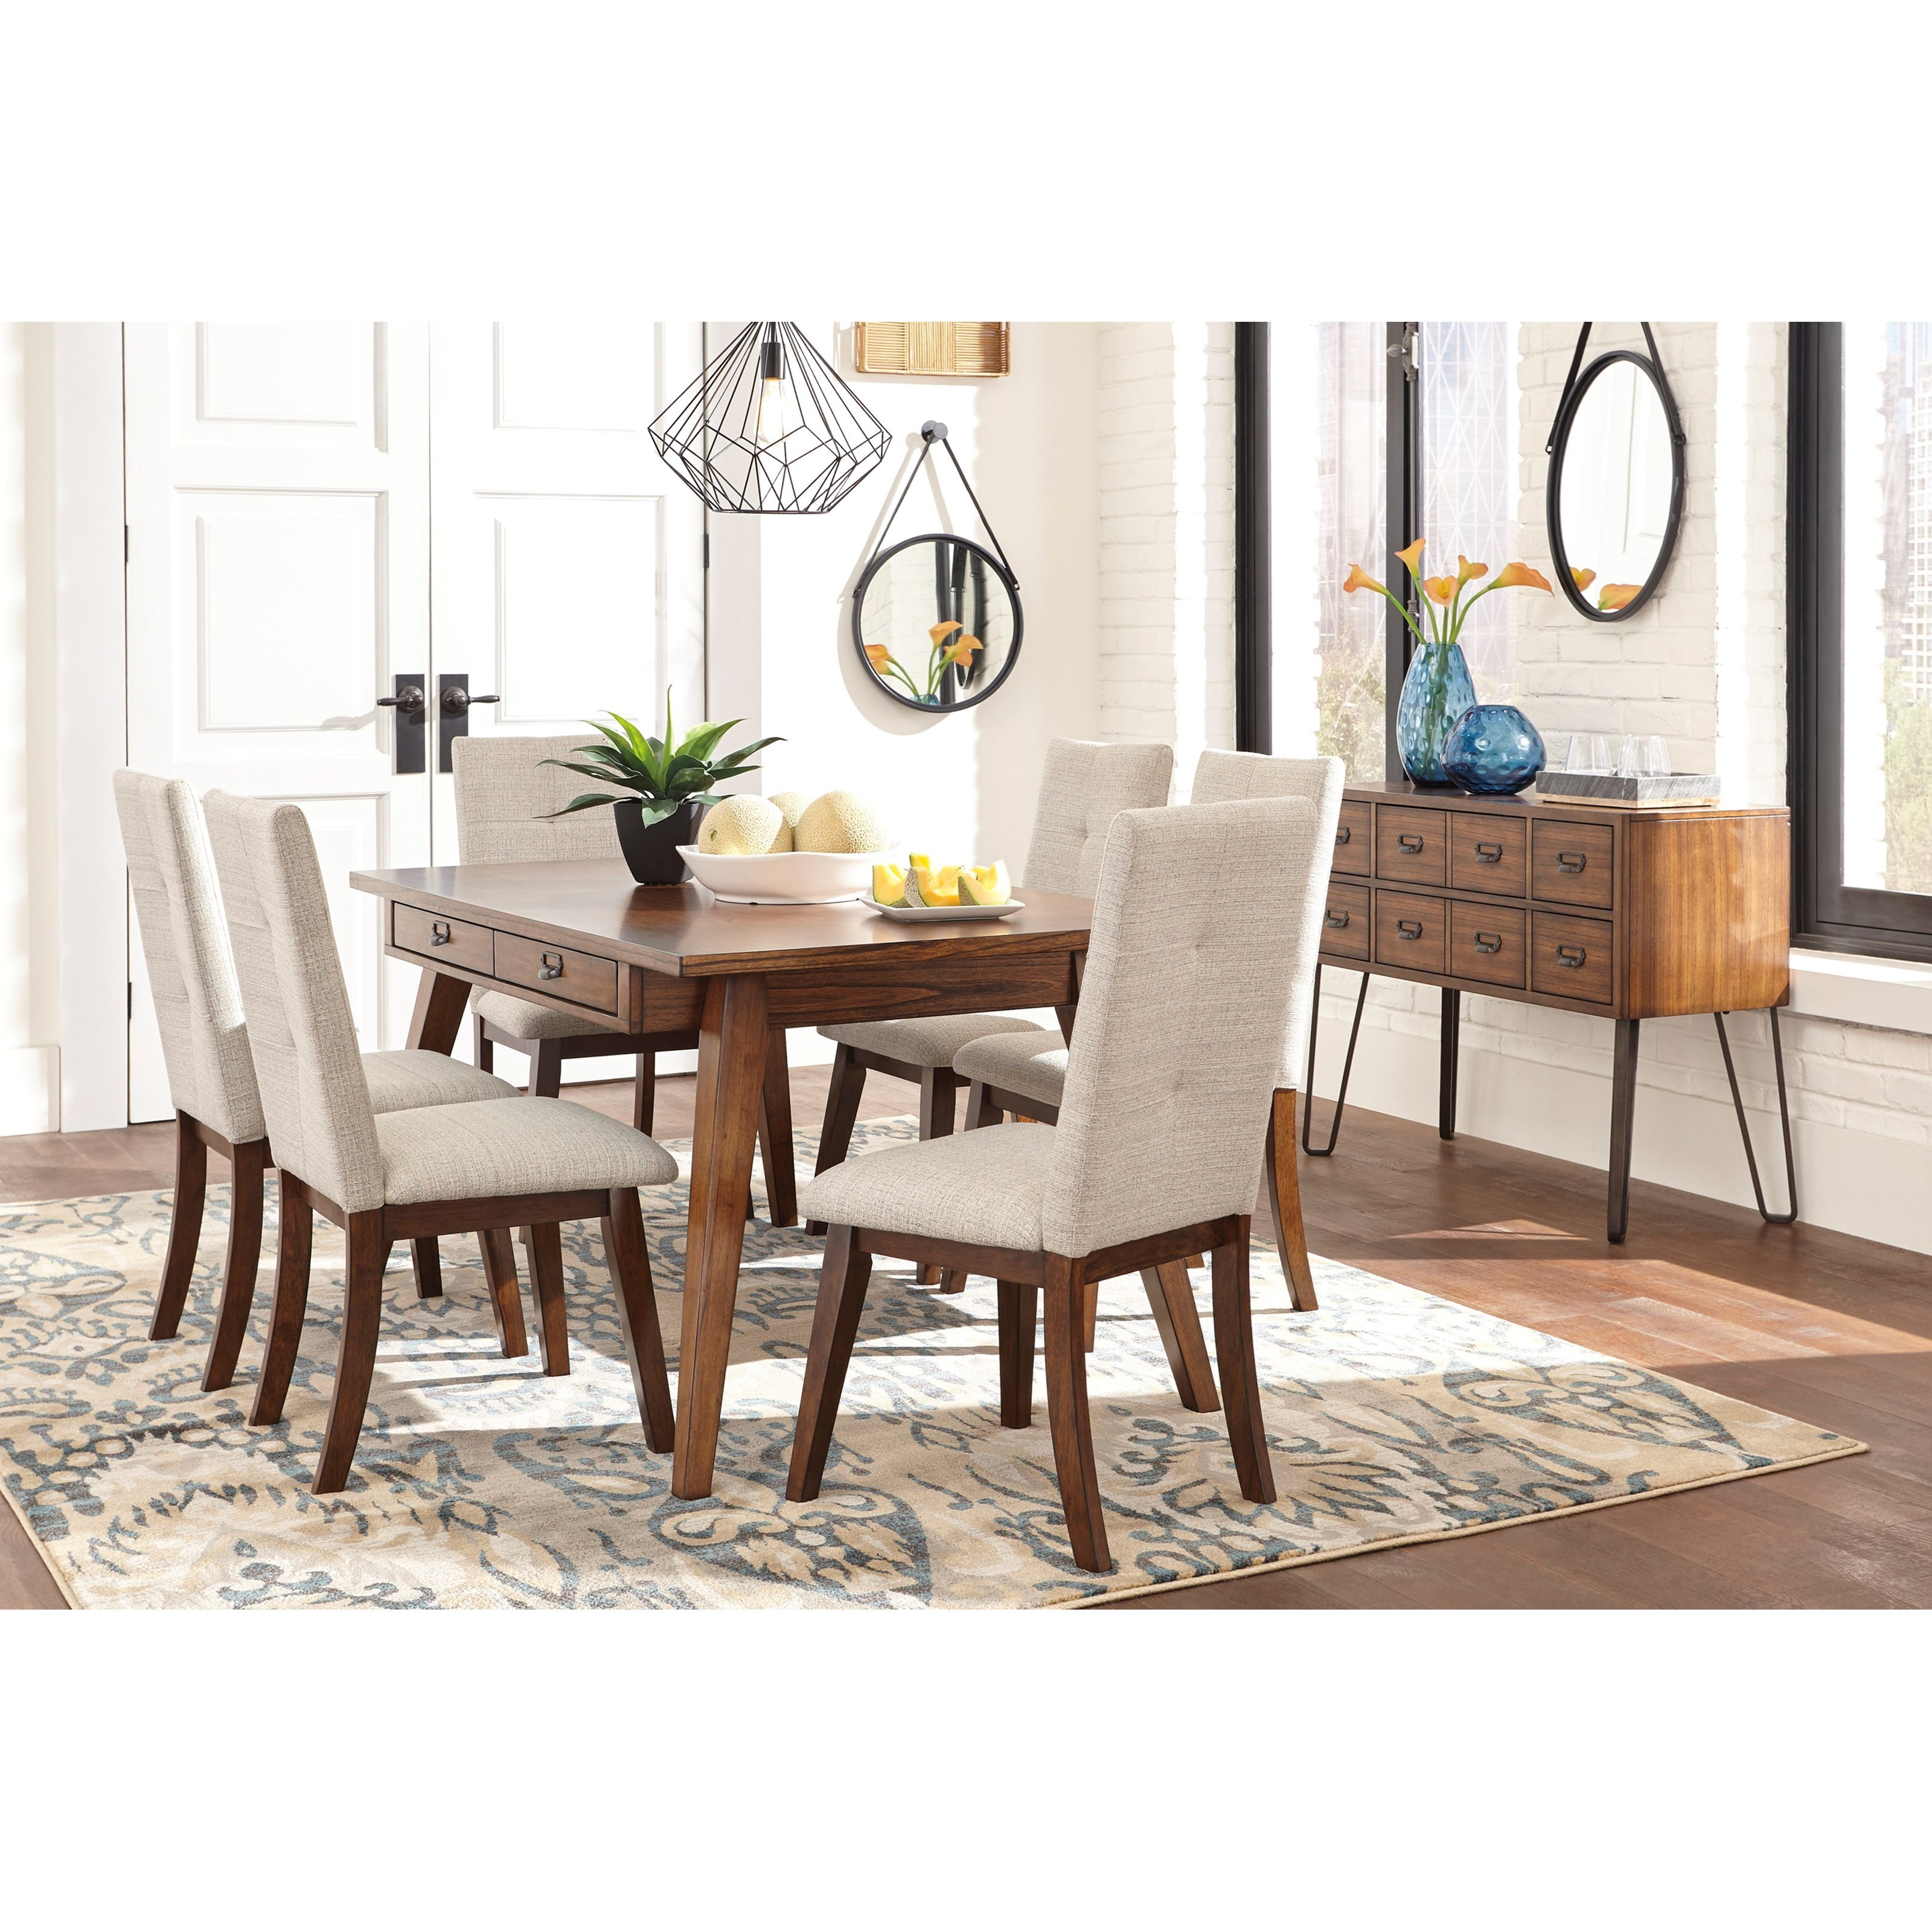 Signature Design By Ashley Centiar Casual Dining Room For Group